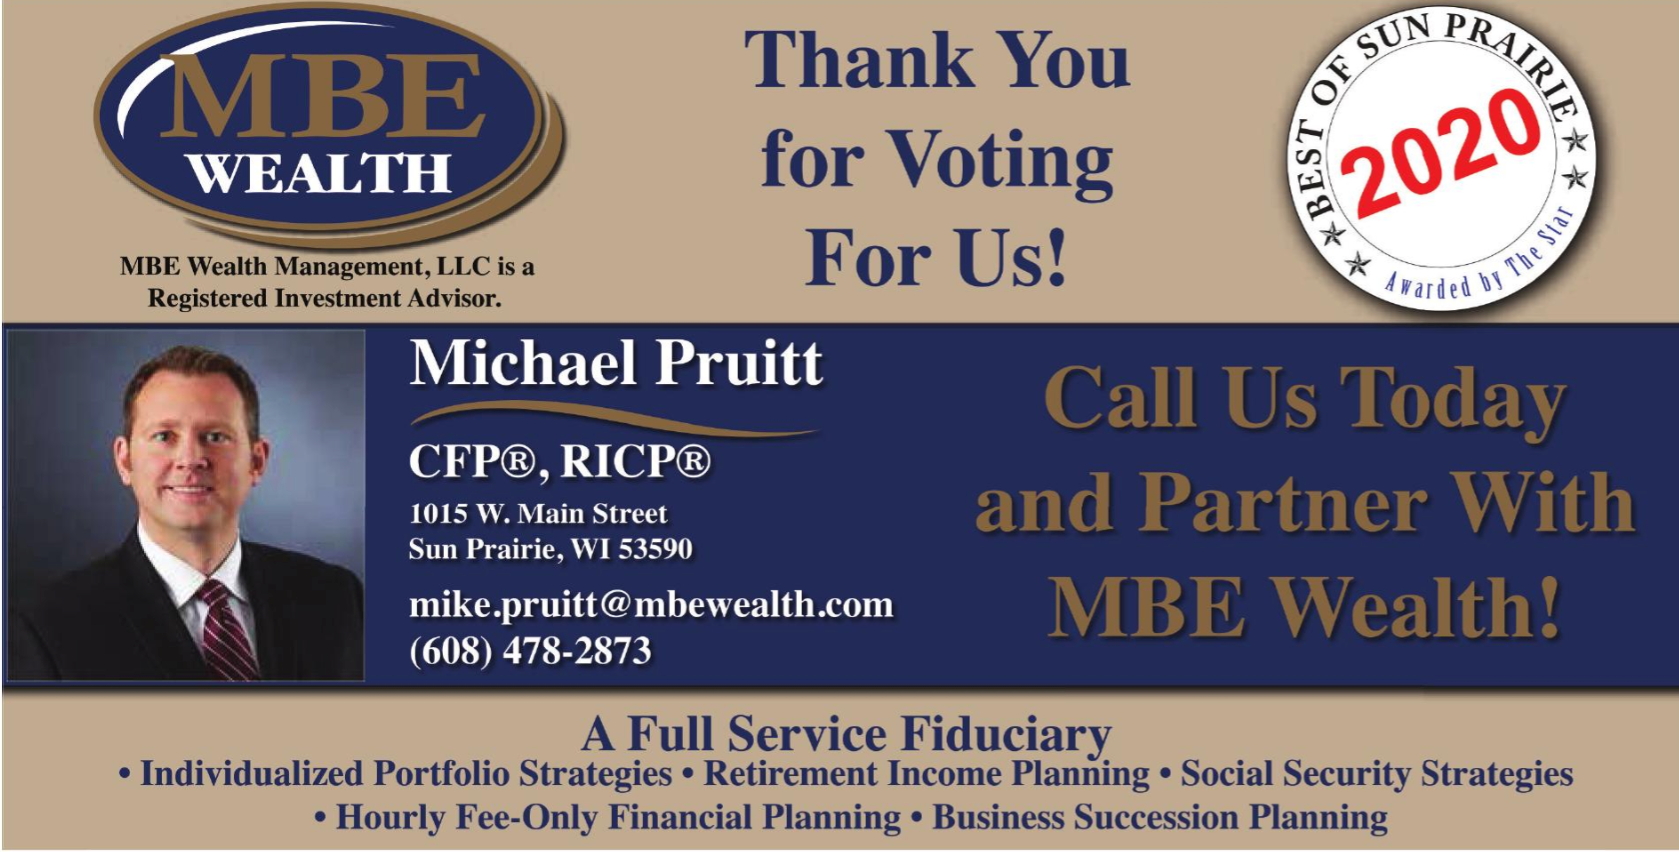 "MBE Wealth's Mike Pruitt voted ""Best Financial Advisor 2020"" in Sun Prairie Star's Annual 'Best of Sun Prairie' Thumbnail"